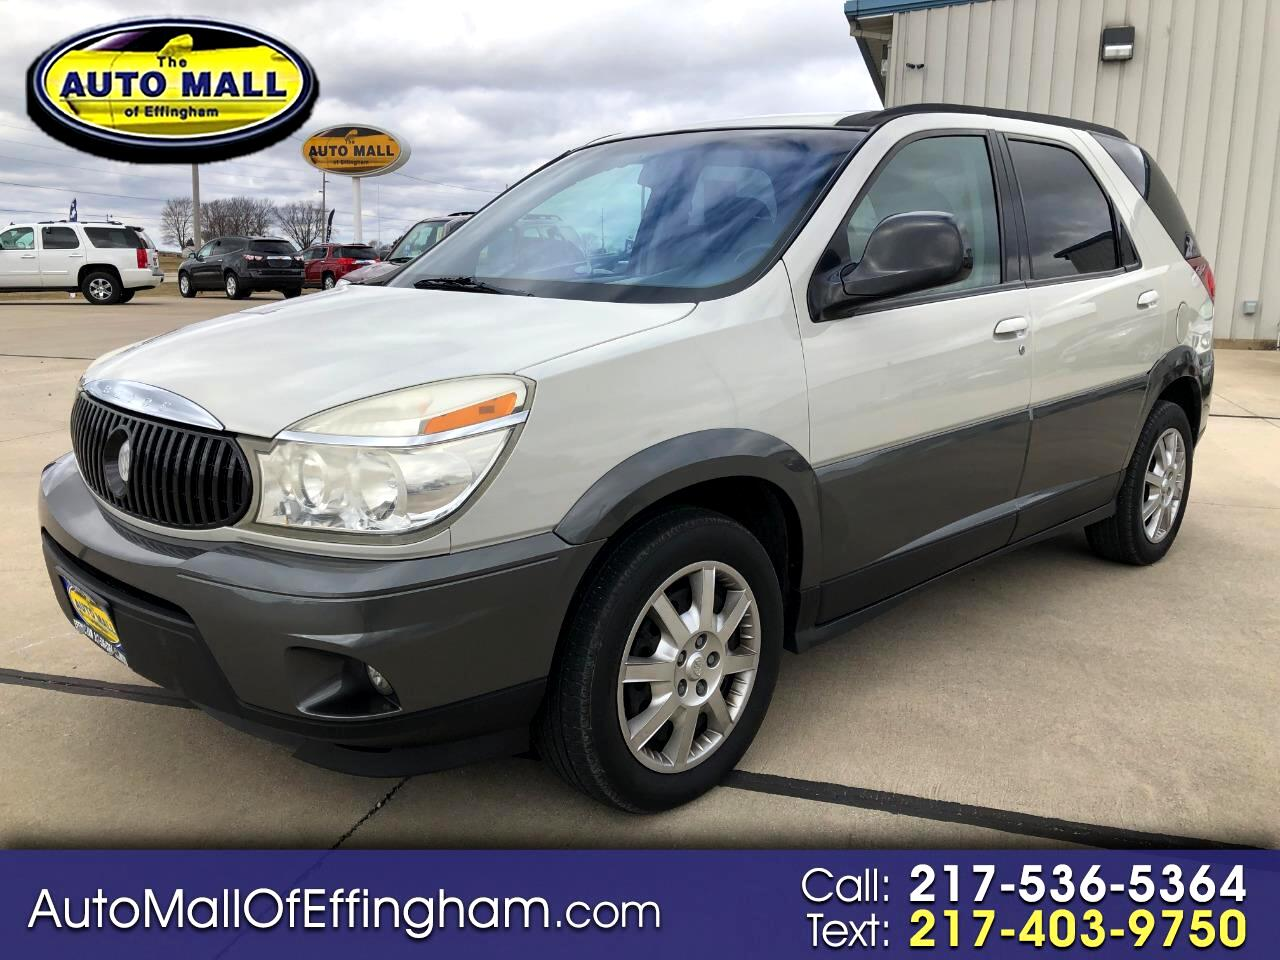 2005 Buick Rendezvous 4dr AWD